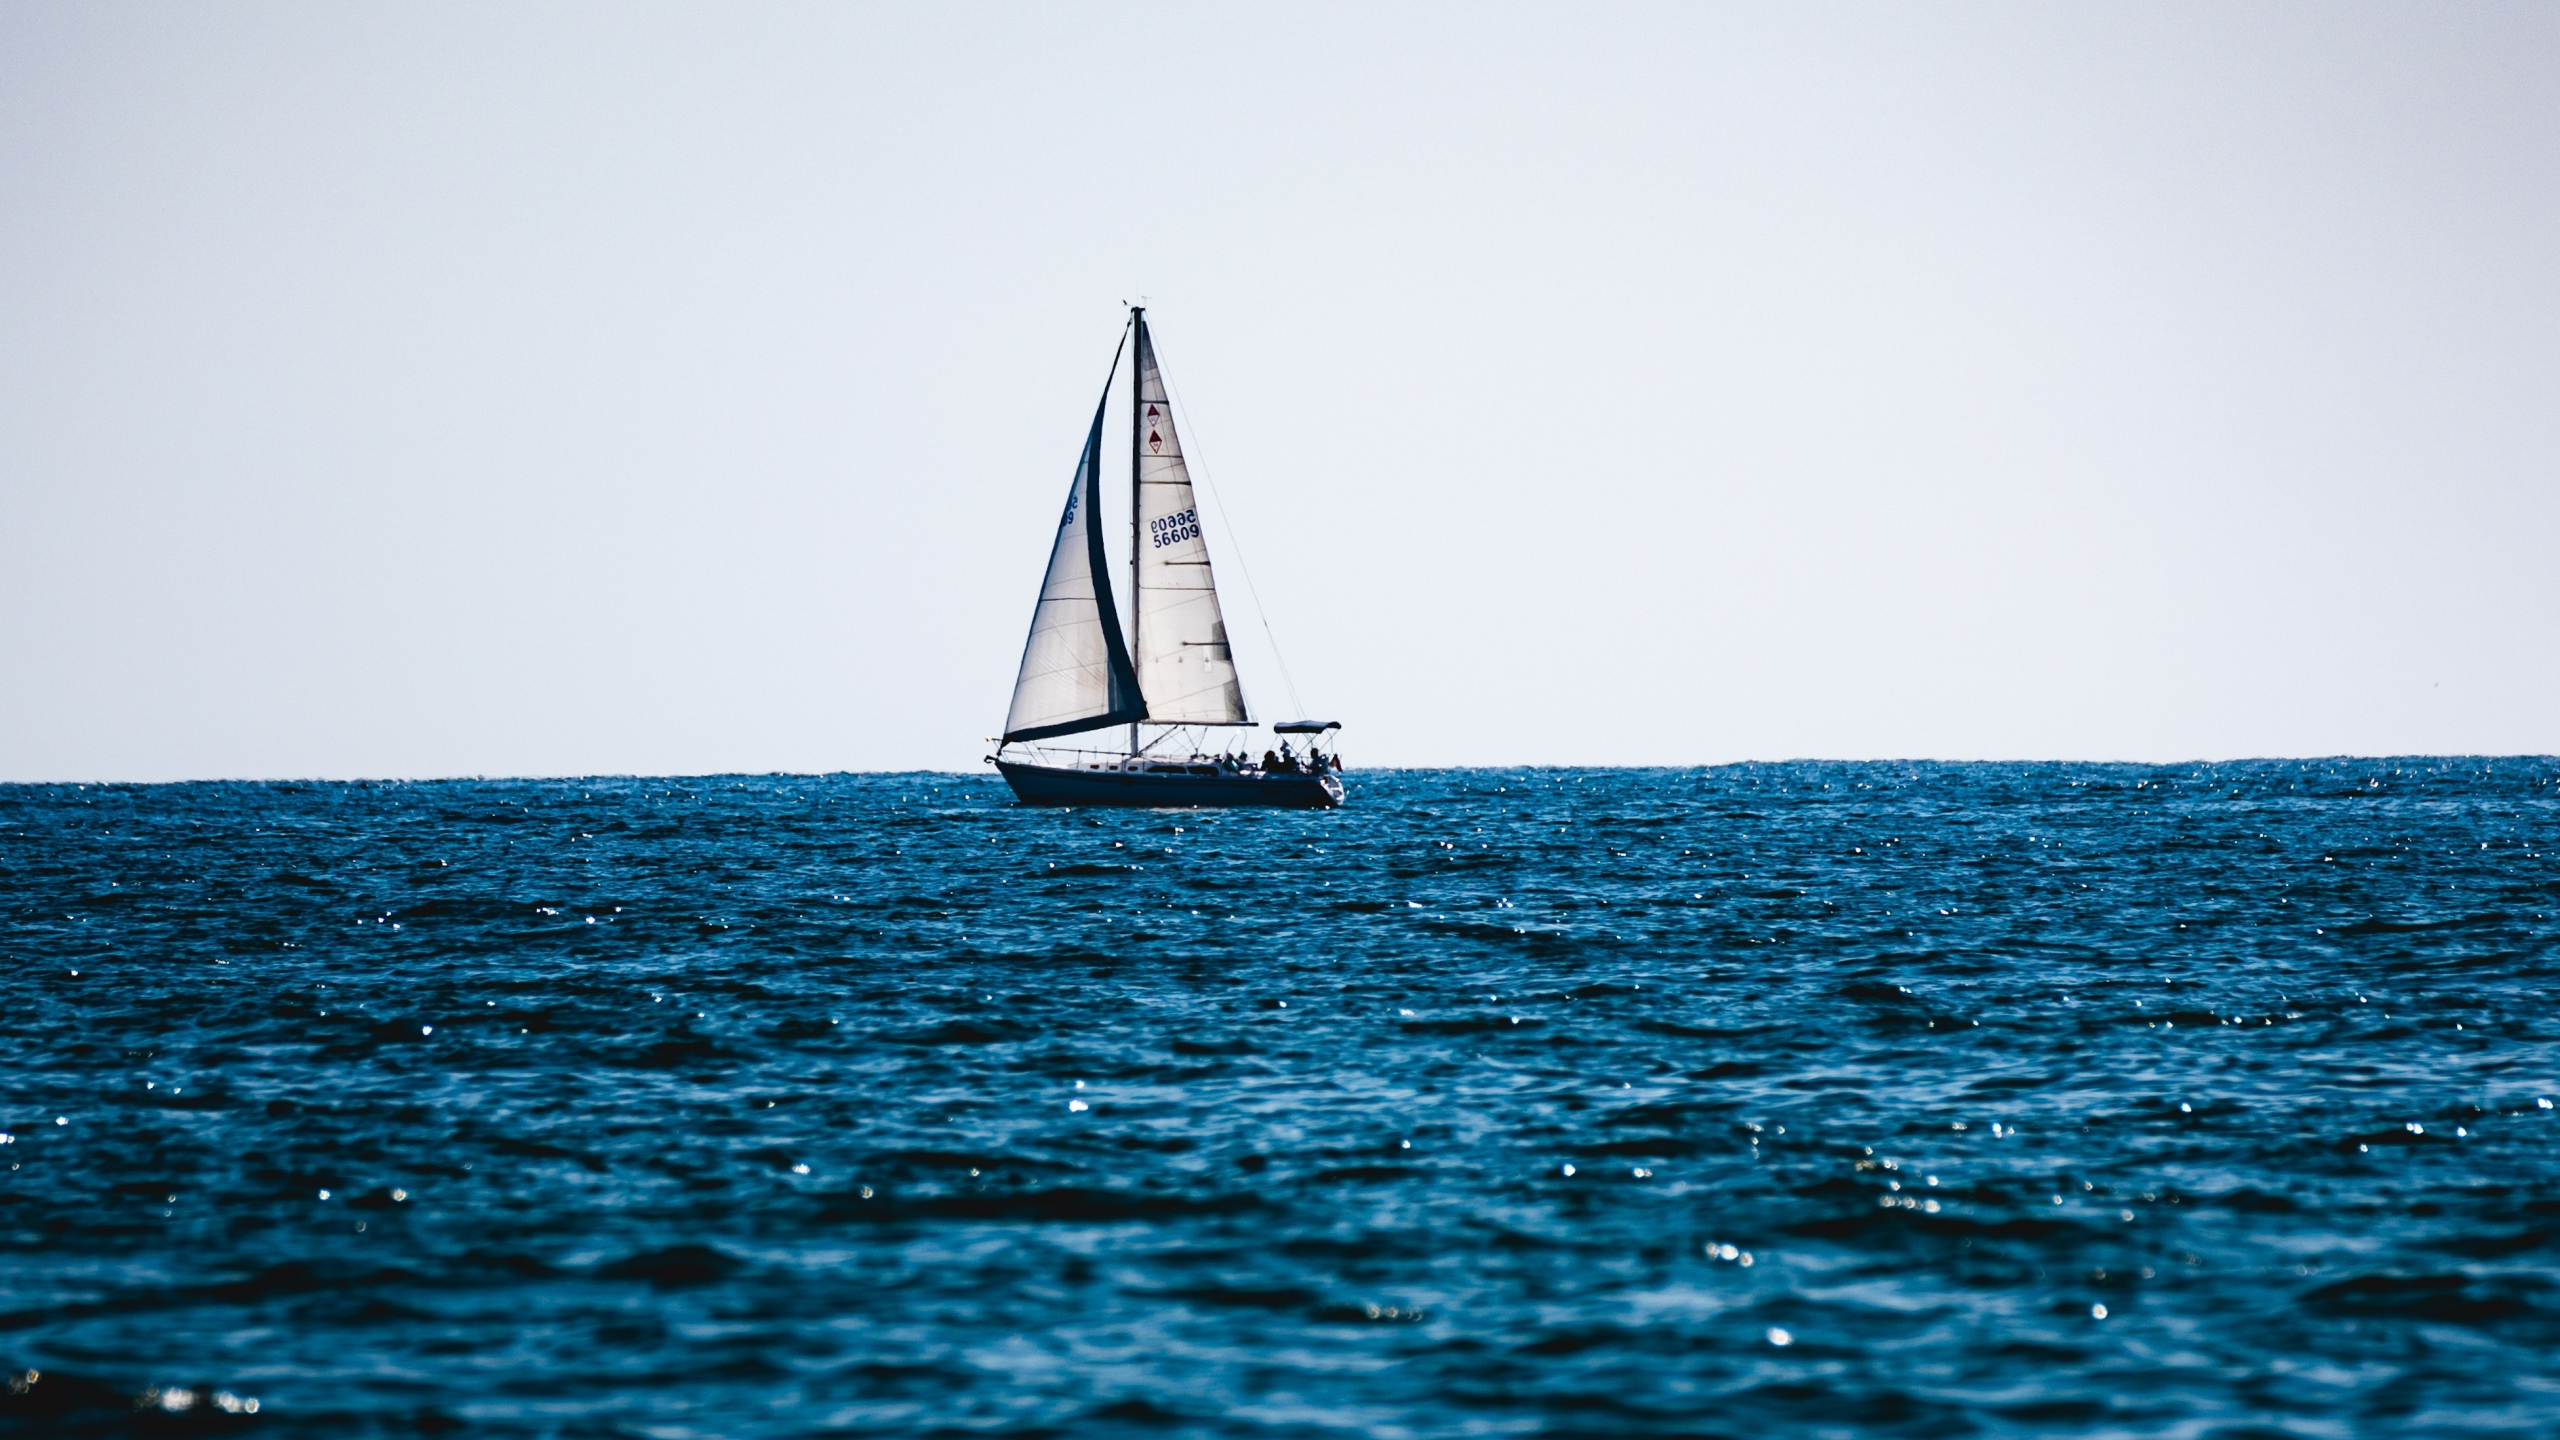 Download 2560x1440 Wallpaper Week End Out Sailboat Blue Sea Summer Dual Wide Widescreen 16 9 Widescreen 2560x1440 Hd Image Background 23181